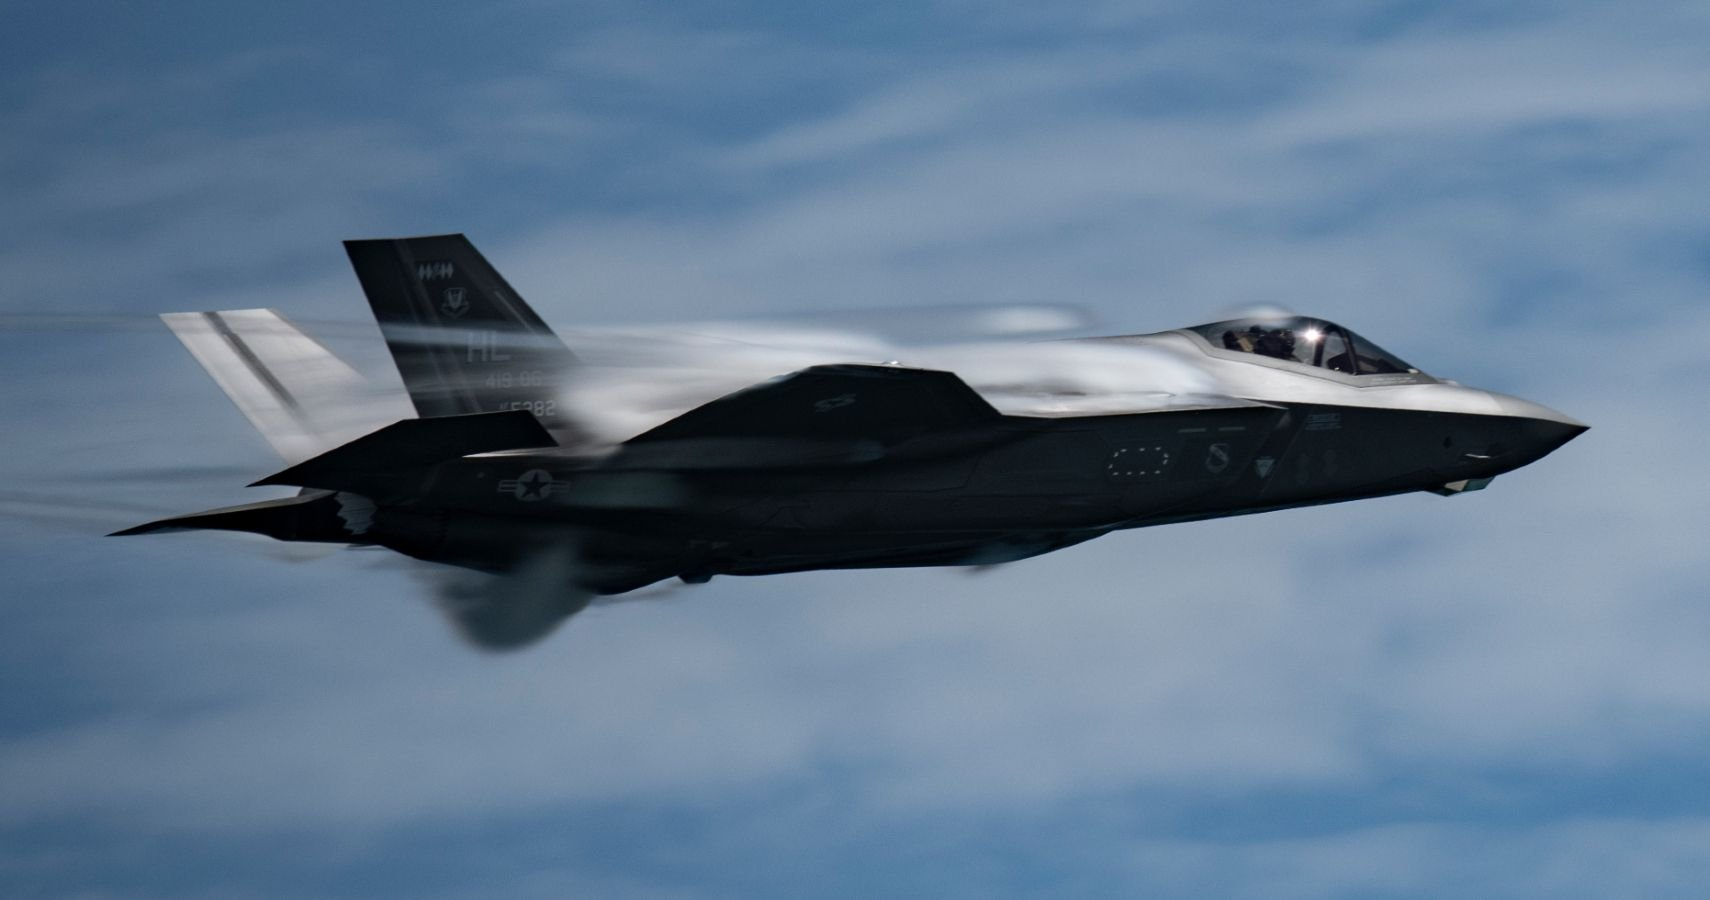 The U.S. Air Force Showcases Another Amazing Week In Photos